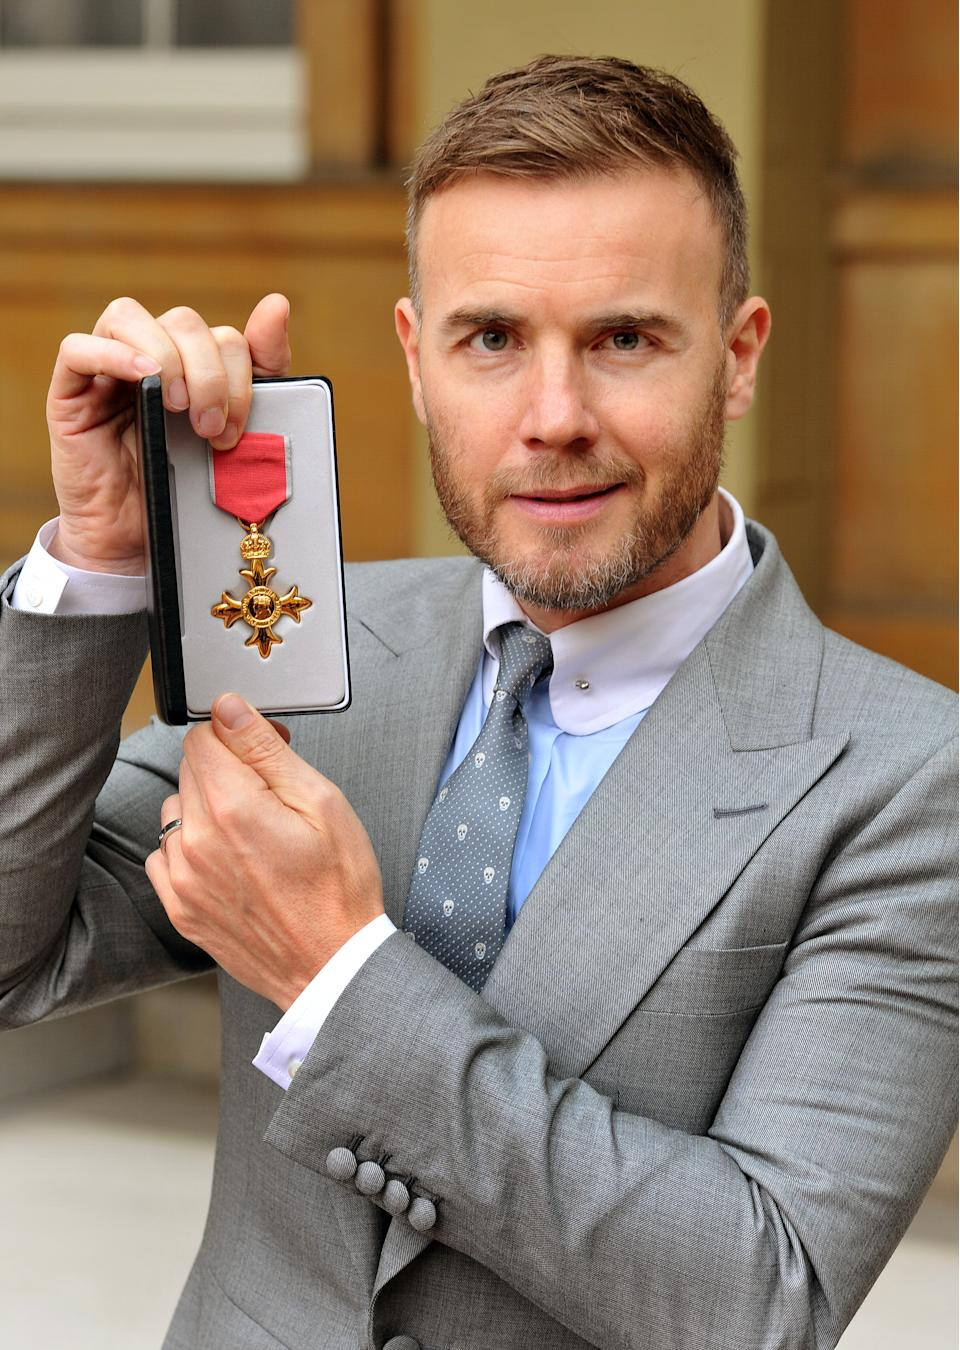 Gary Barlow holds his OBE, for services to the entertainment industry and to charity, which was awarded to him by Queen Elizabeth II during an Investiture ceremony at Buckingham Palace on November 21, 2012 in London, England. (Photo by John Stillwell/WPA Pool/Getty Images)